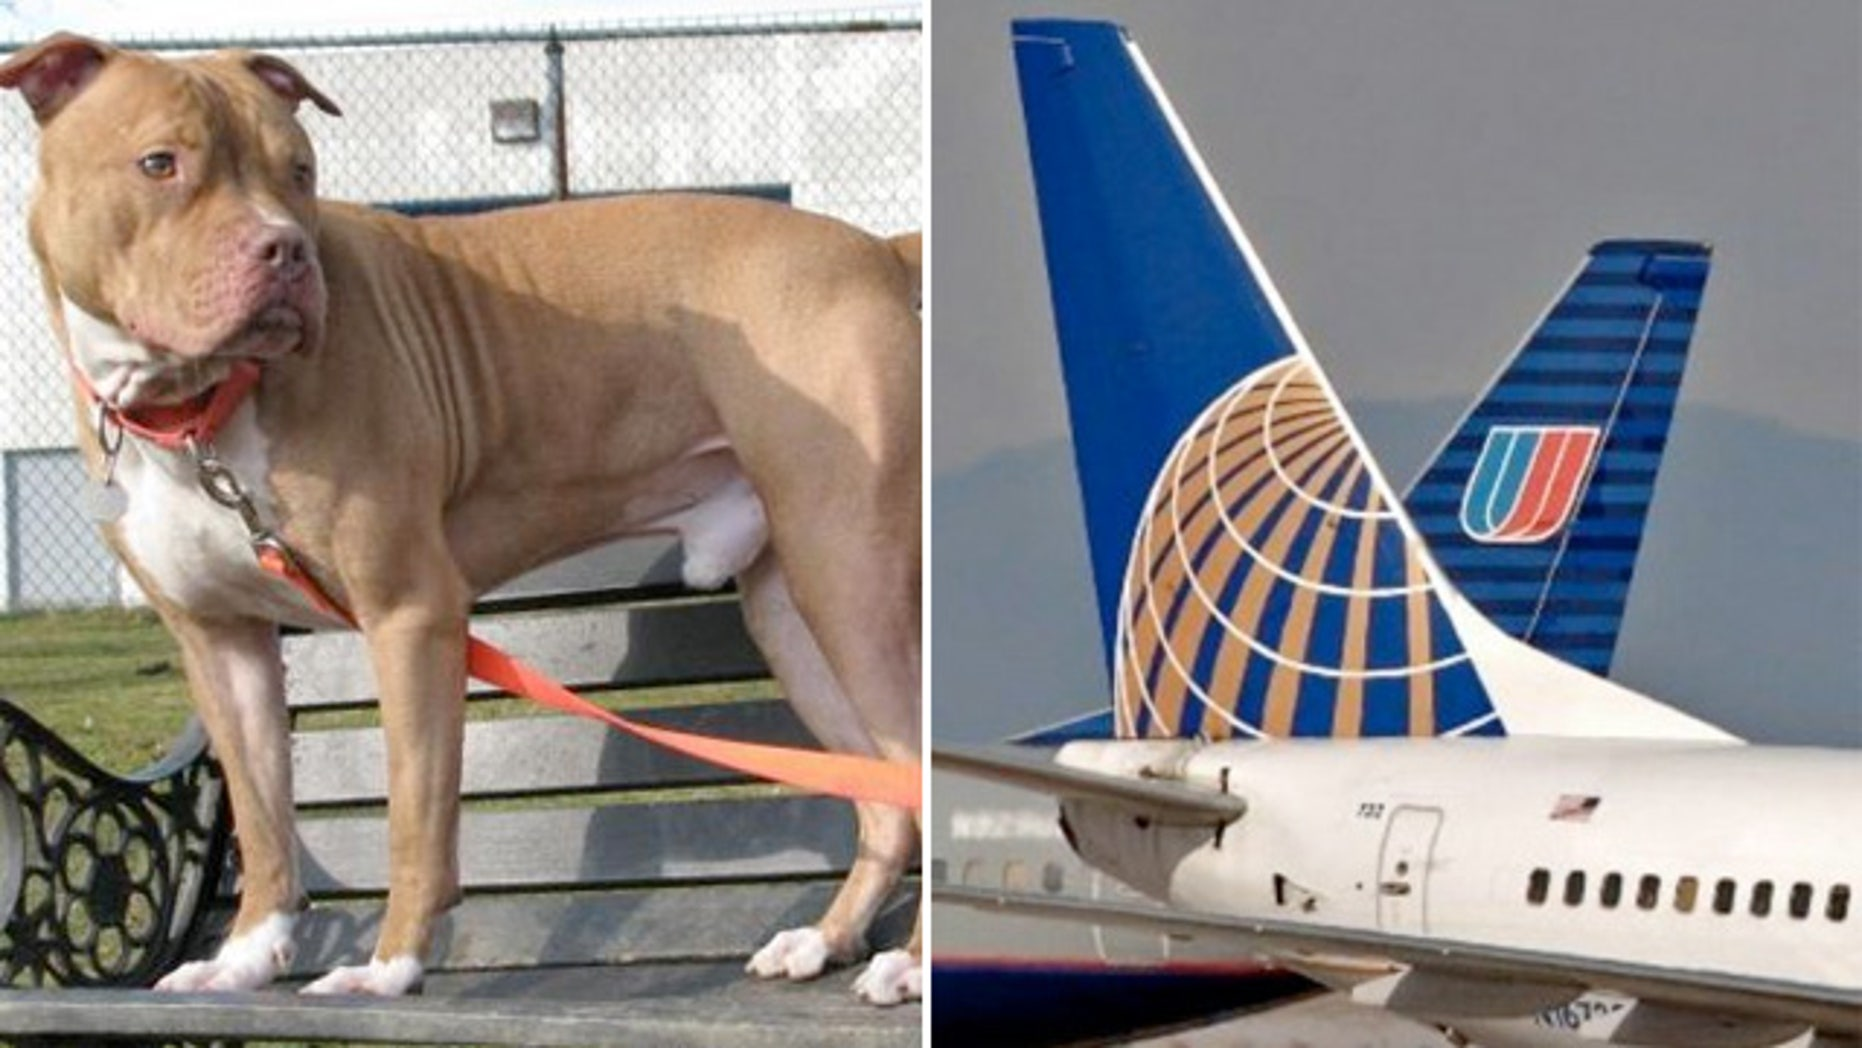 United Airlines Bans Transport Of Certain Breeds Of Dogs Fox News